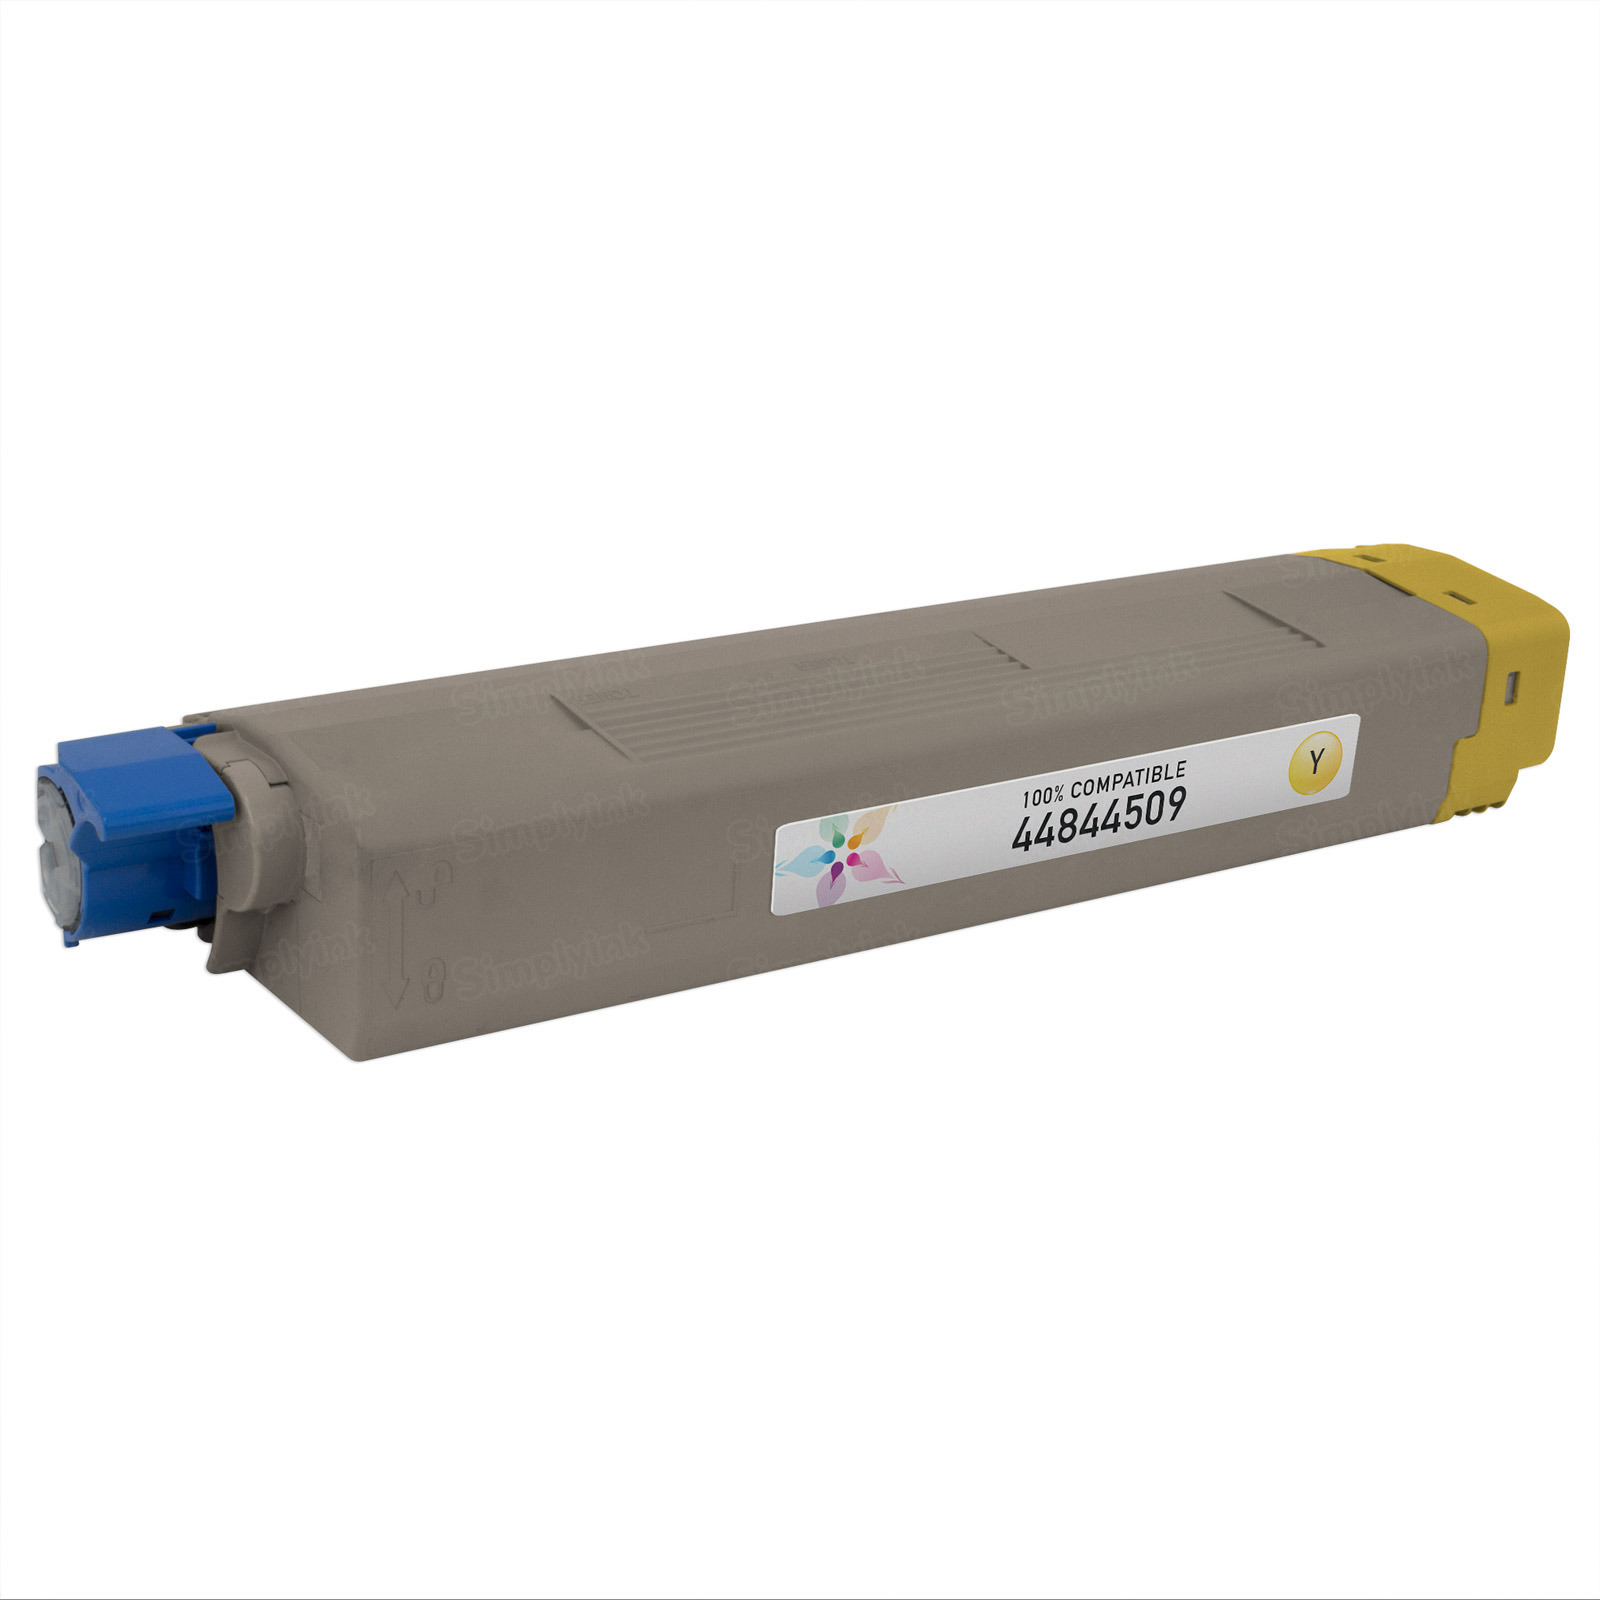 Okidata Compatible 44844509 Yellow Laser Toner